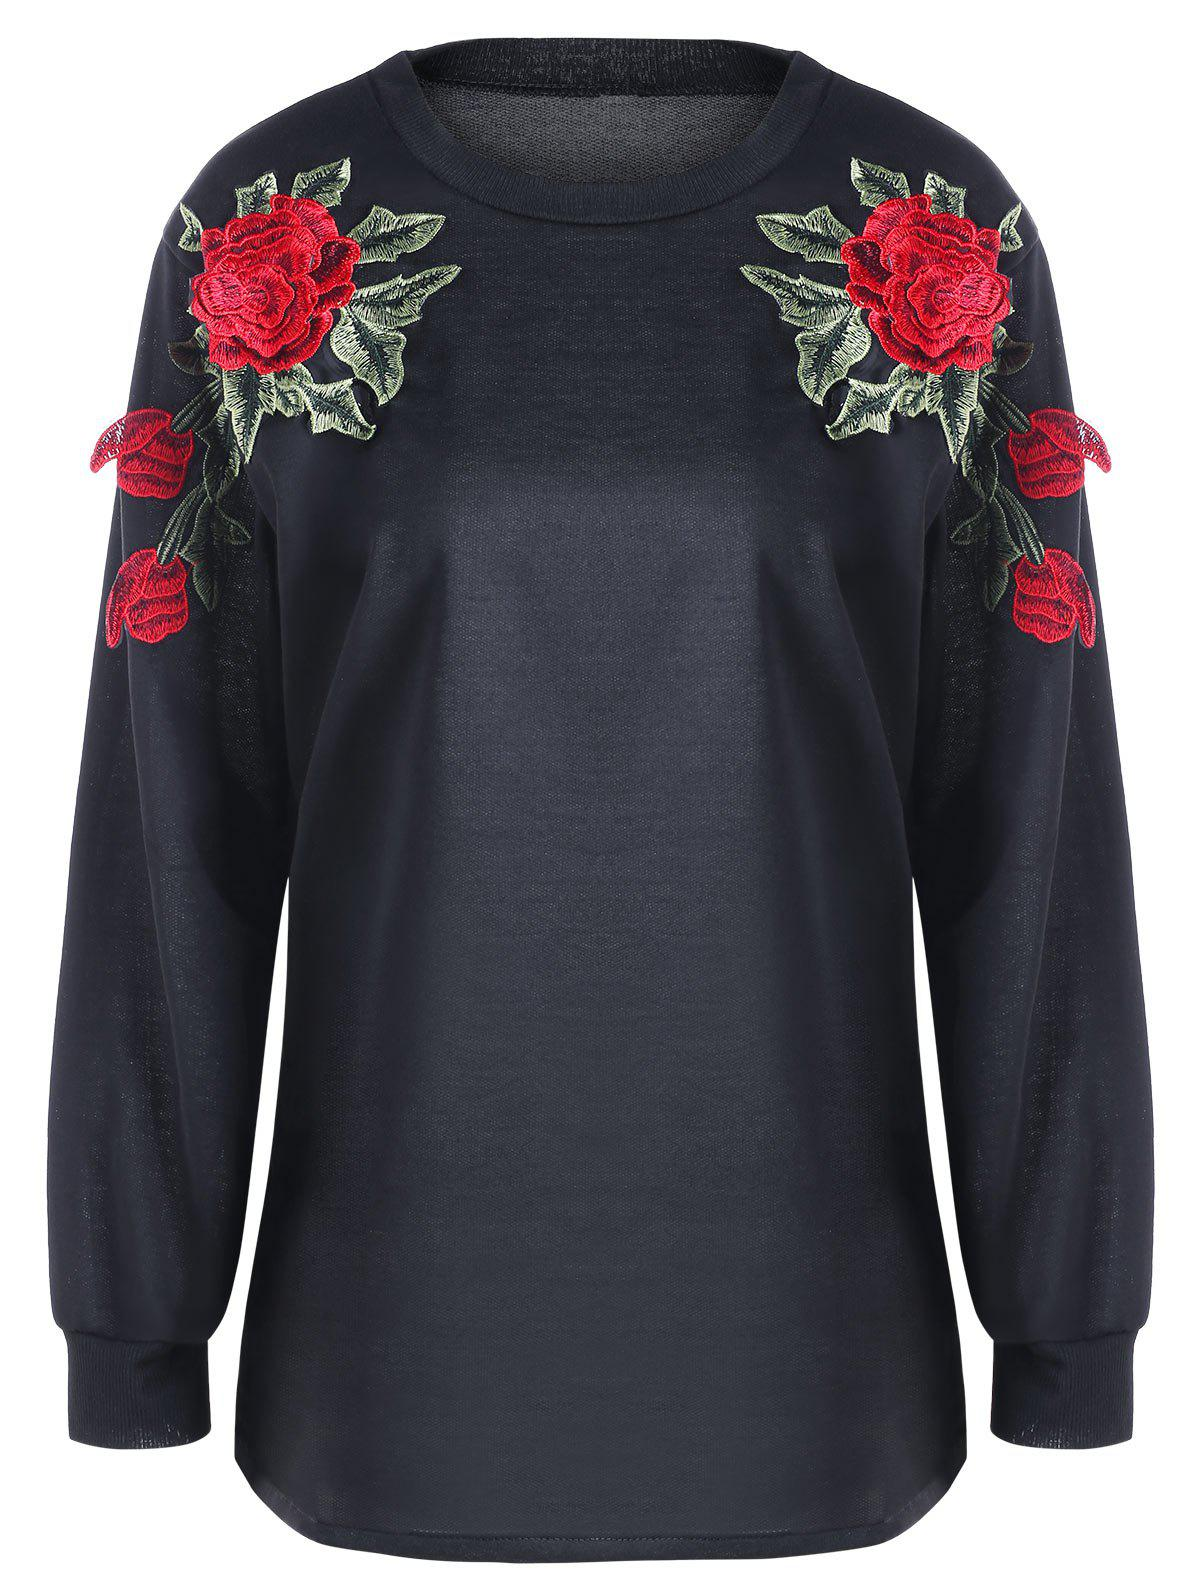 New Flower Embroidery Sweatshirt